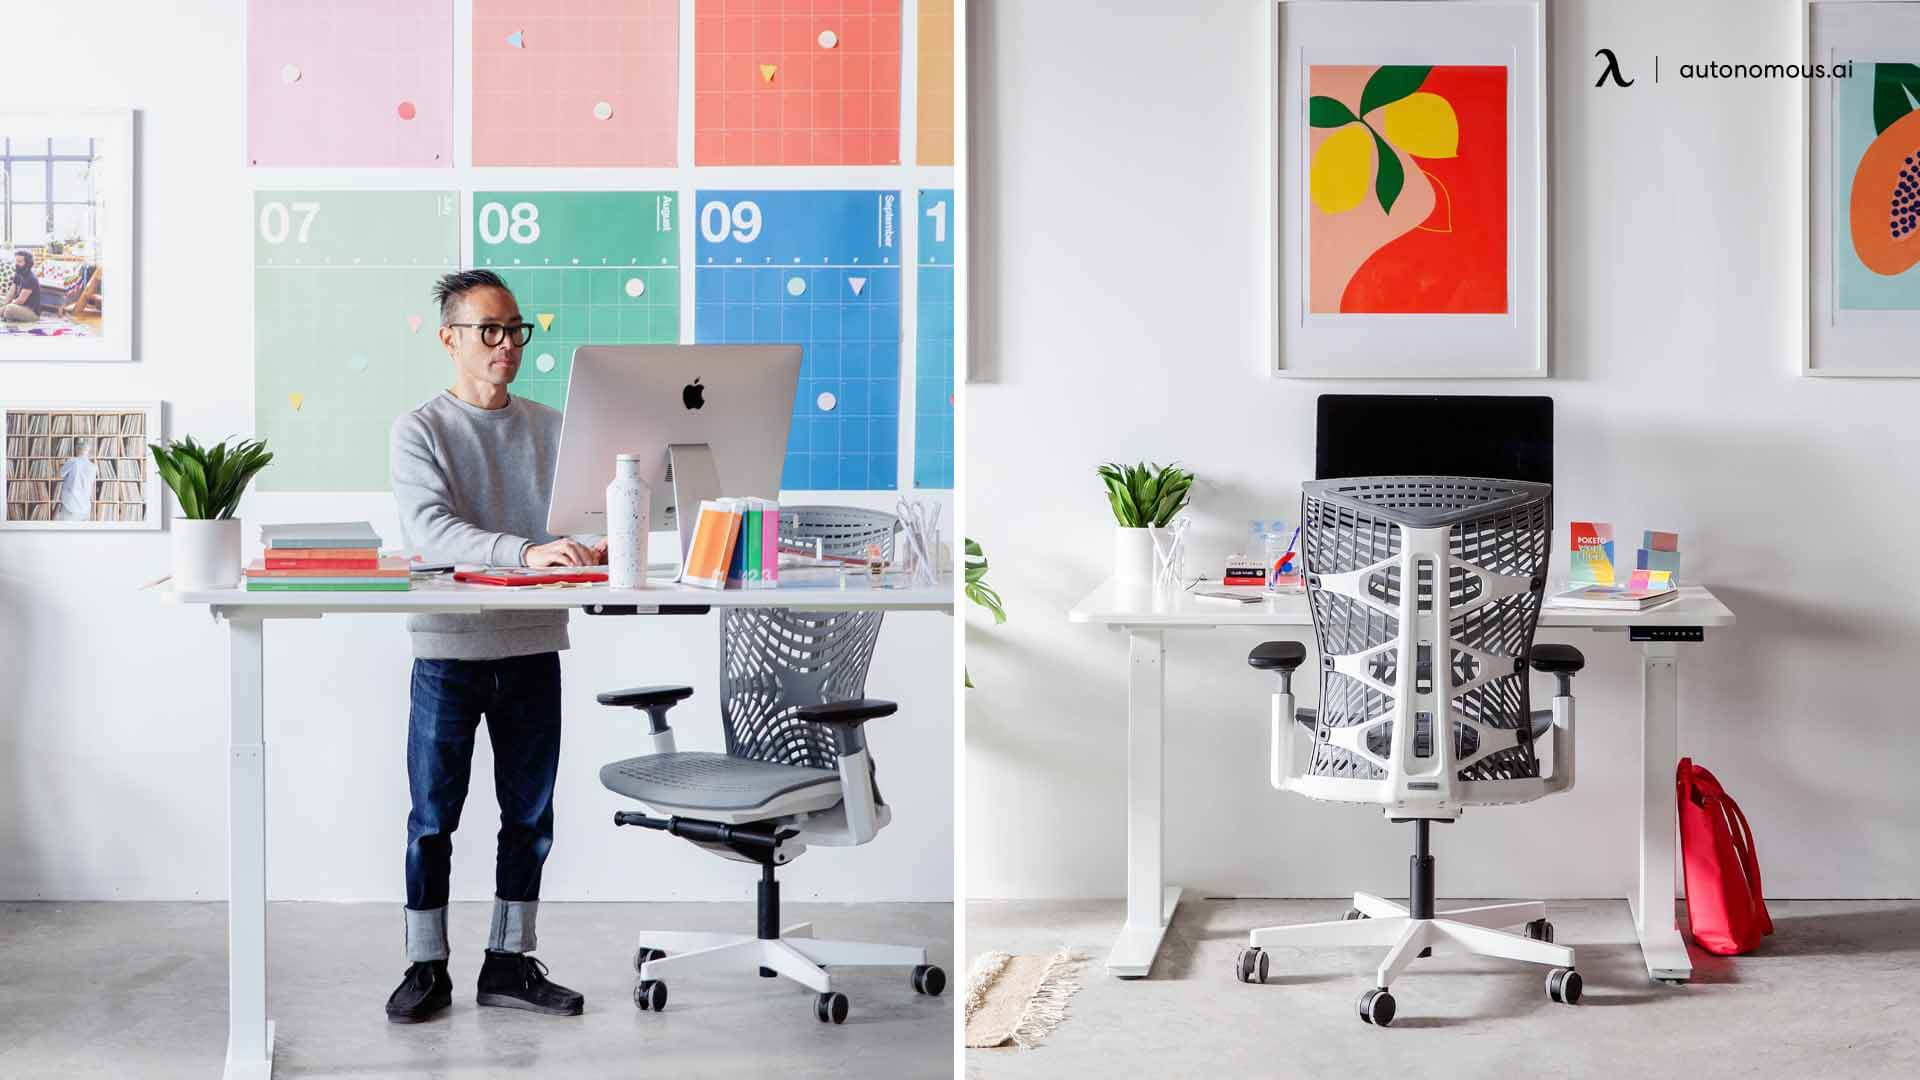 You shouldn't stand too long at standing desk